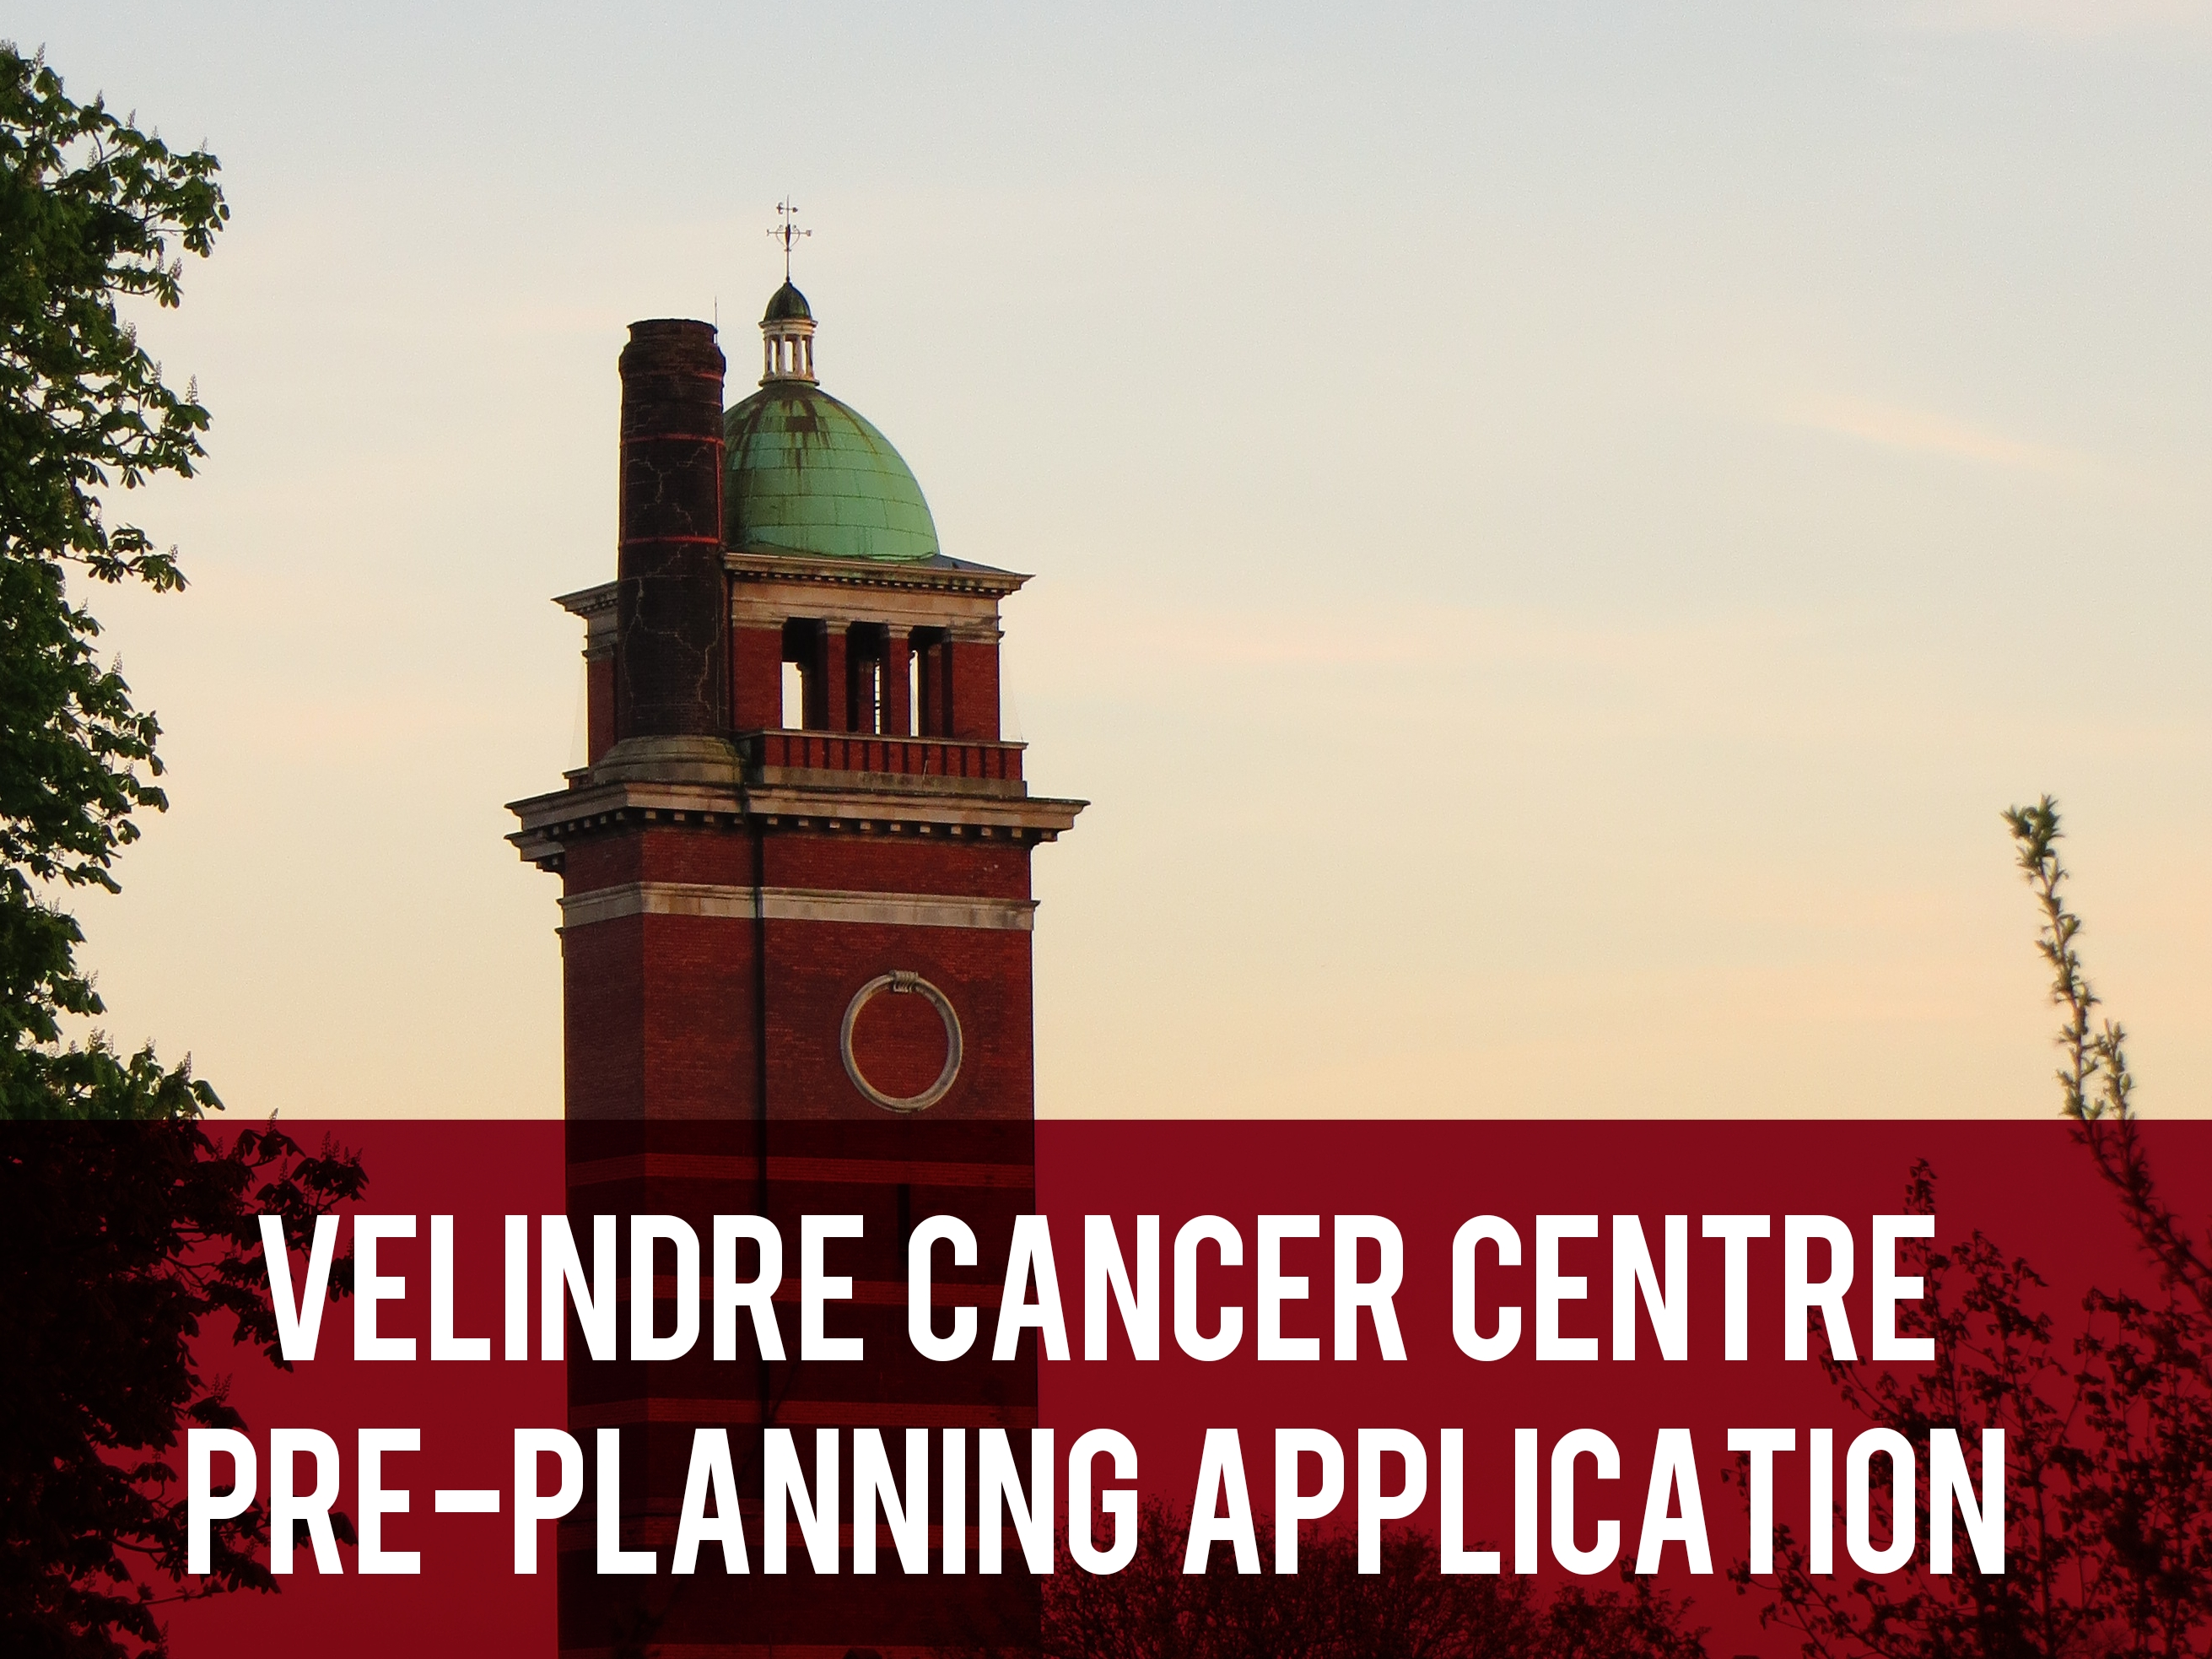 Velindre Cancer Centre Pre-planning Application header